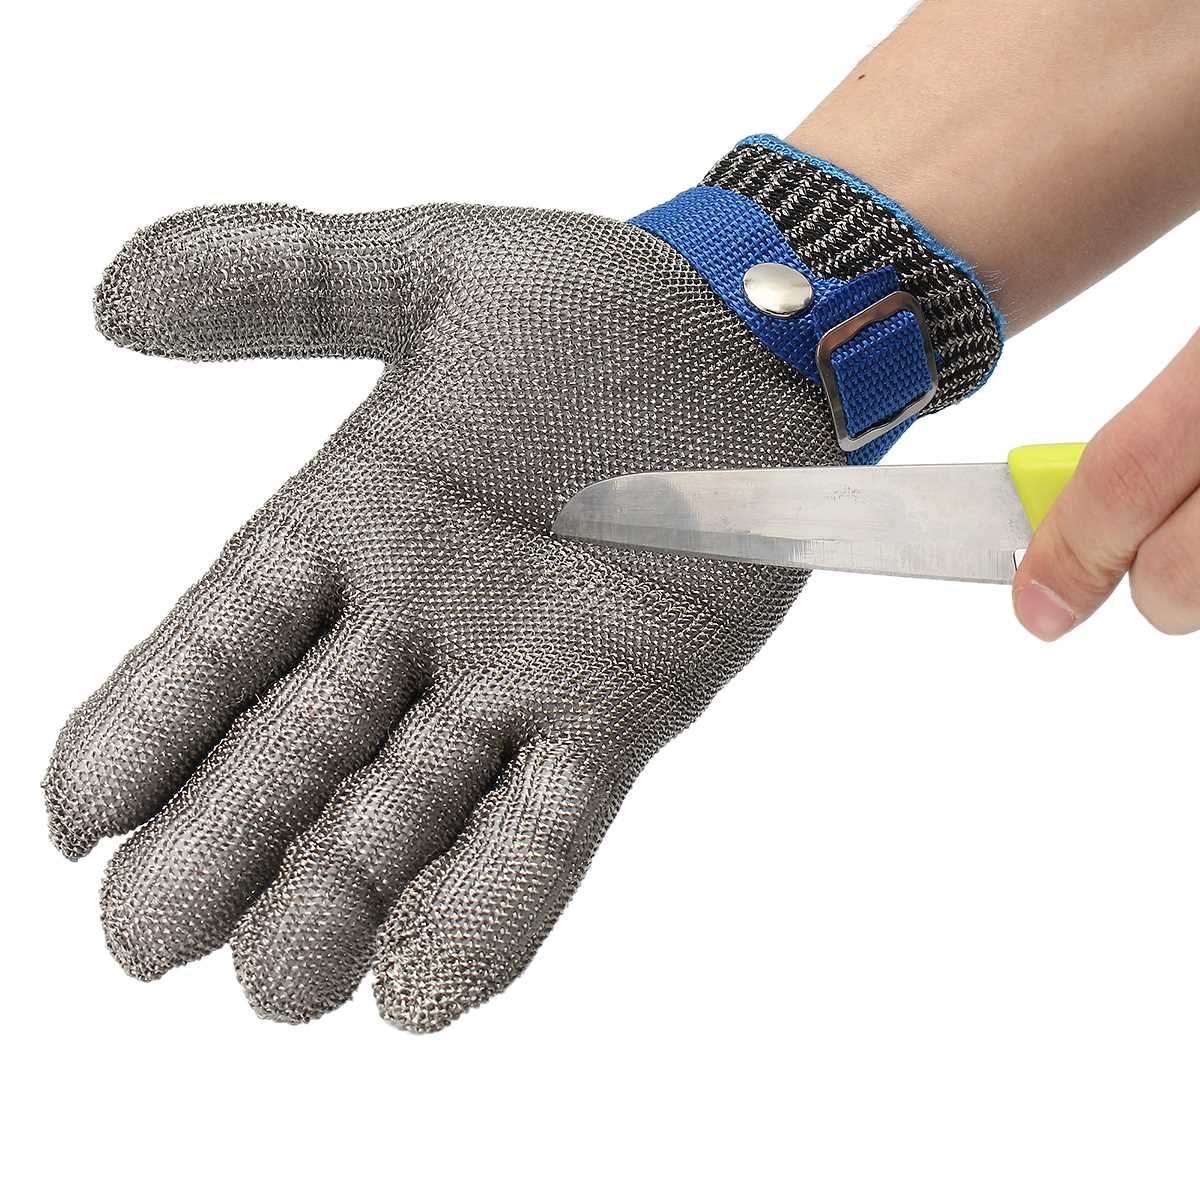 NEW Size S Safety Cut Proof Stab Resistant Stainless Steel Wire Metal Mesh Glove High Performance Level 5 Protection 1pcs safety gloves cut proof stab resistant stainless steel wire metal mesh butcher anti knife